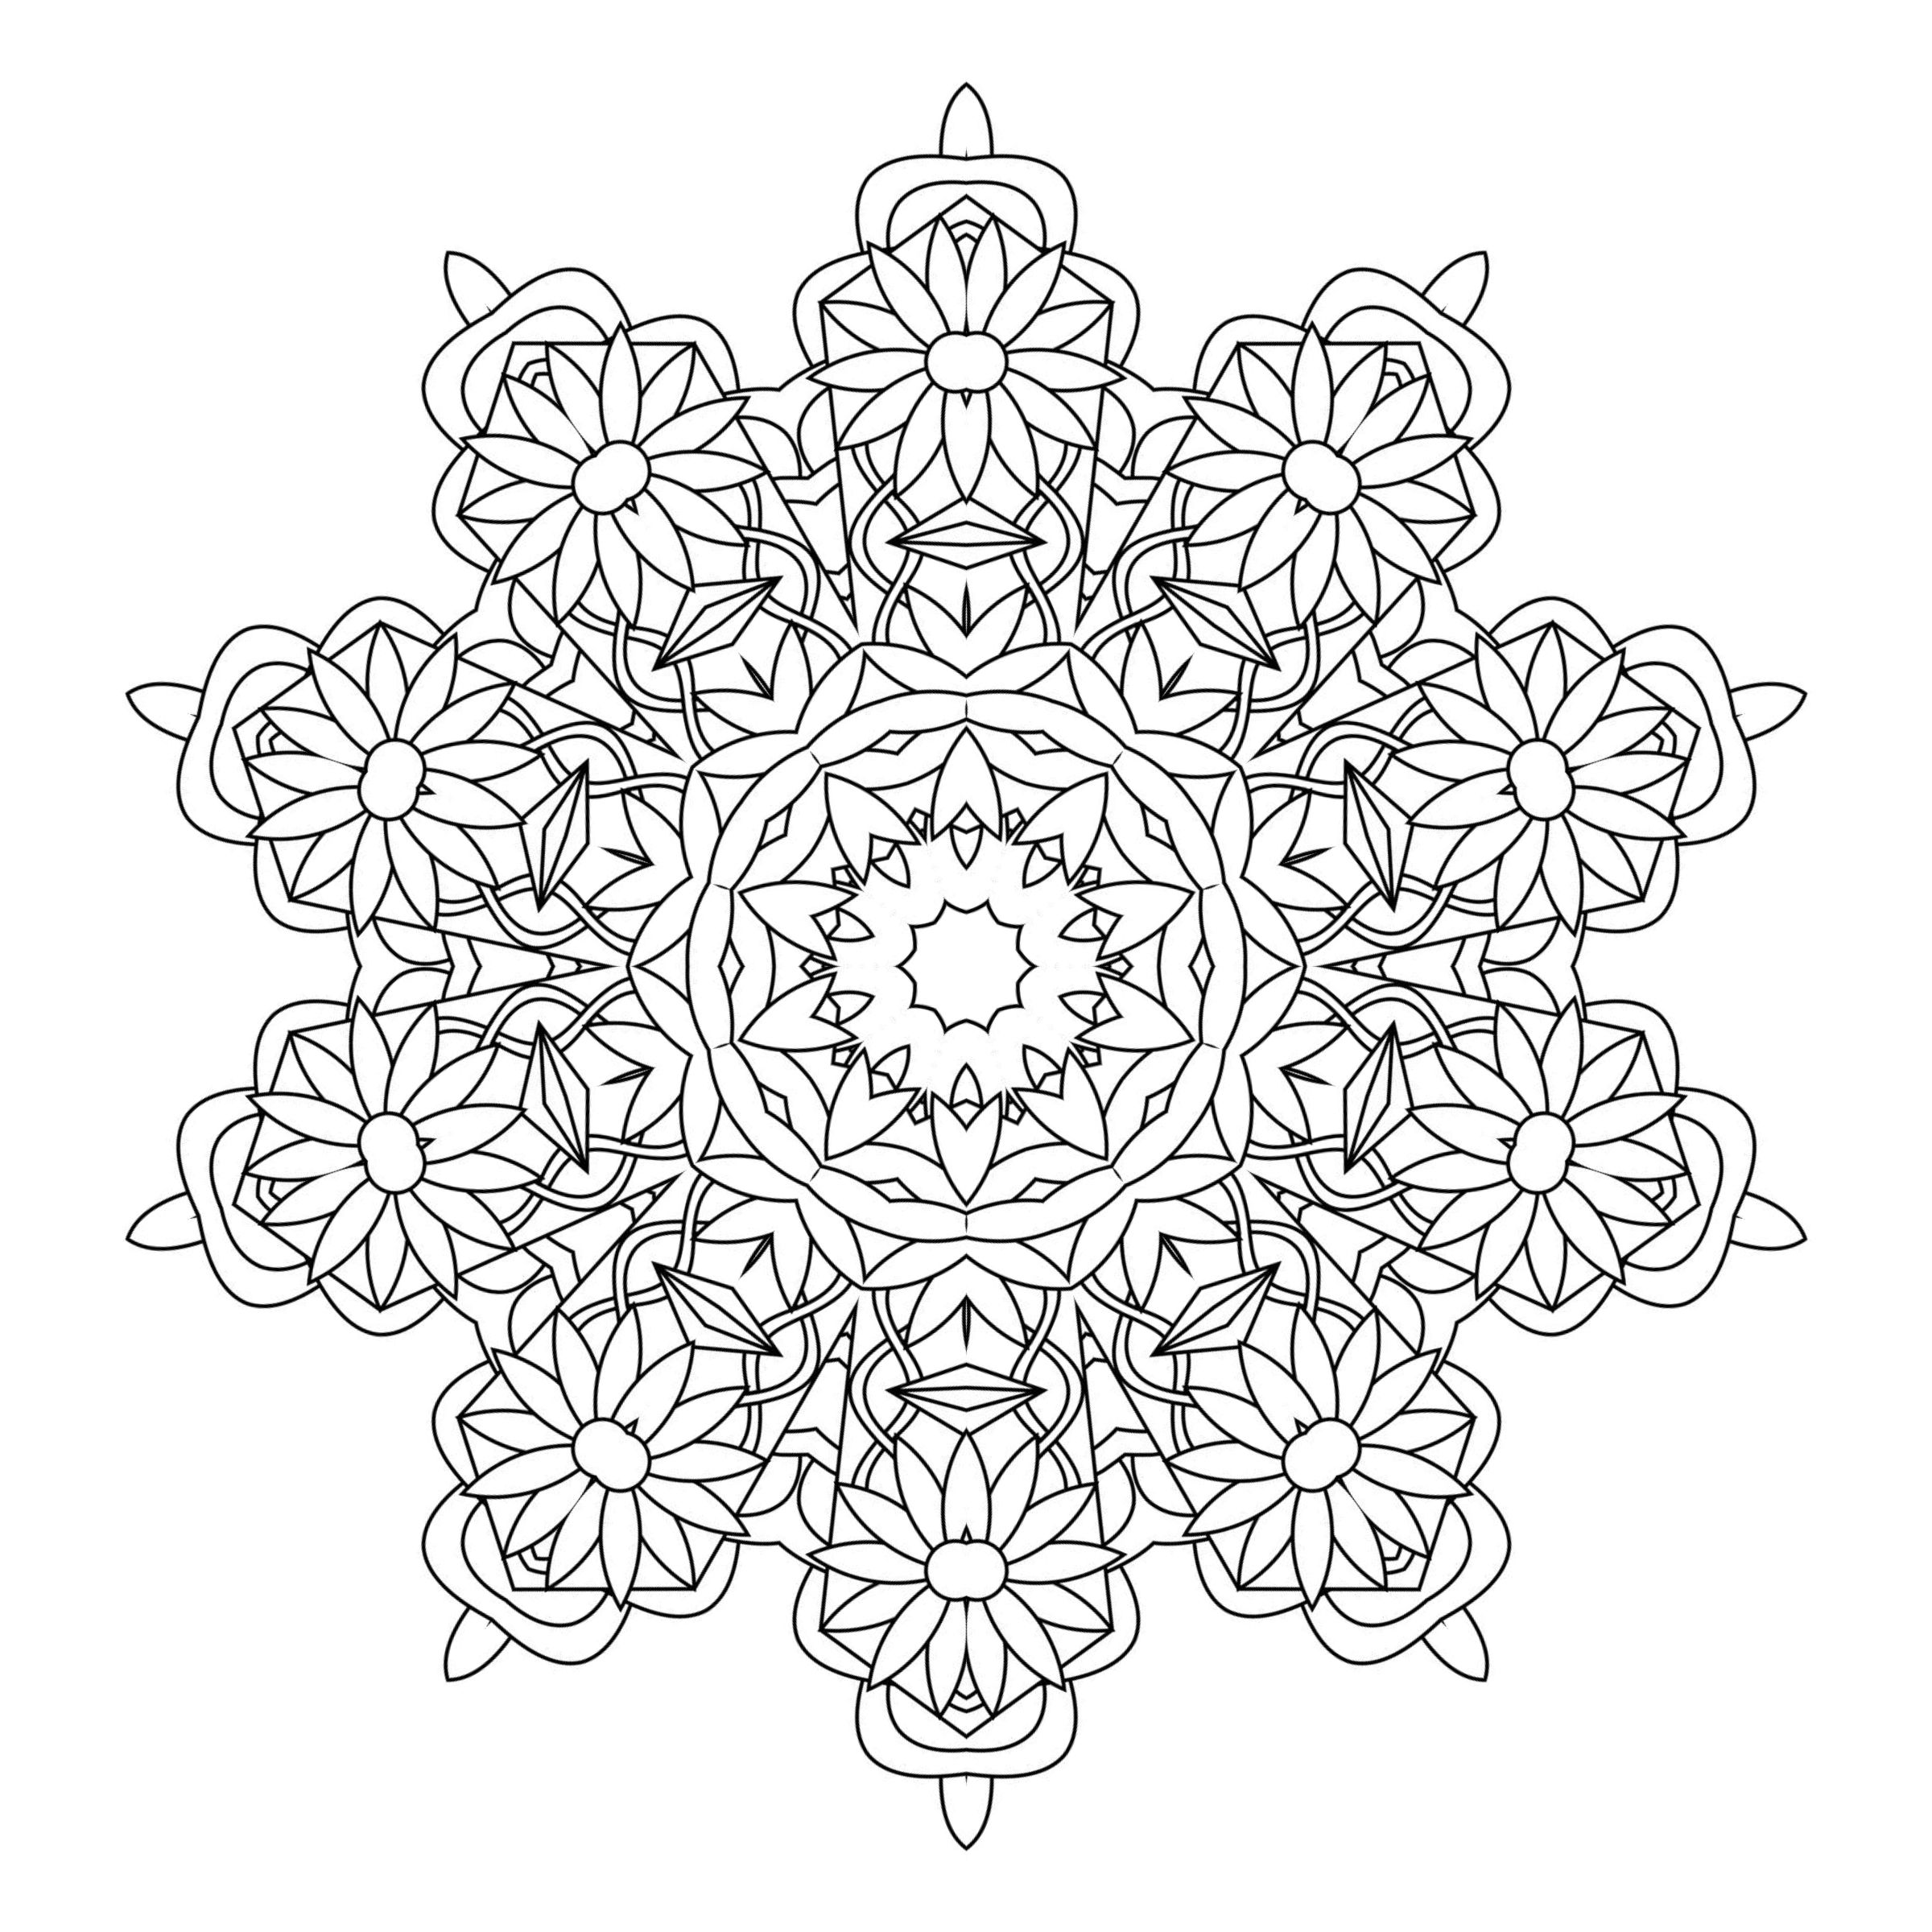 Free coloring pages kaleidoscope designs - Free Coloring Page To Print And Color